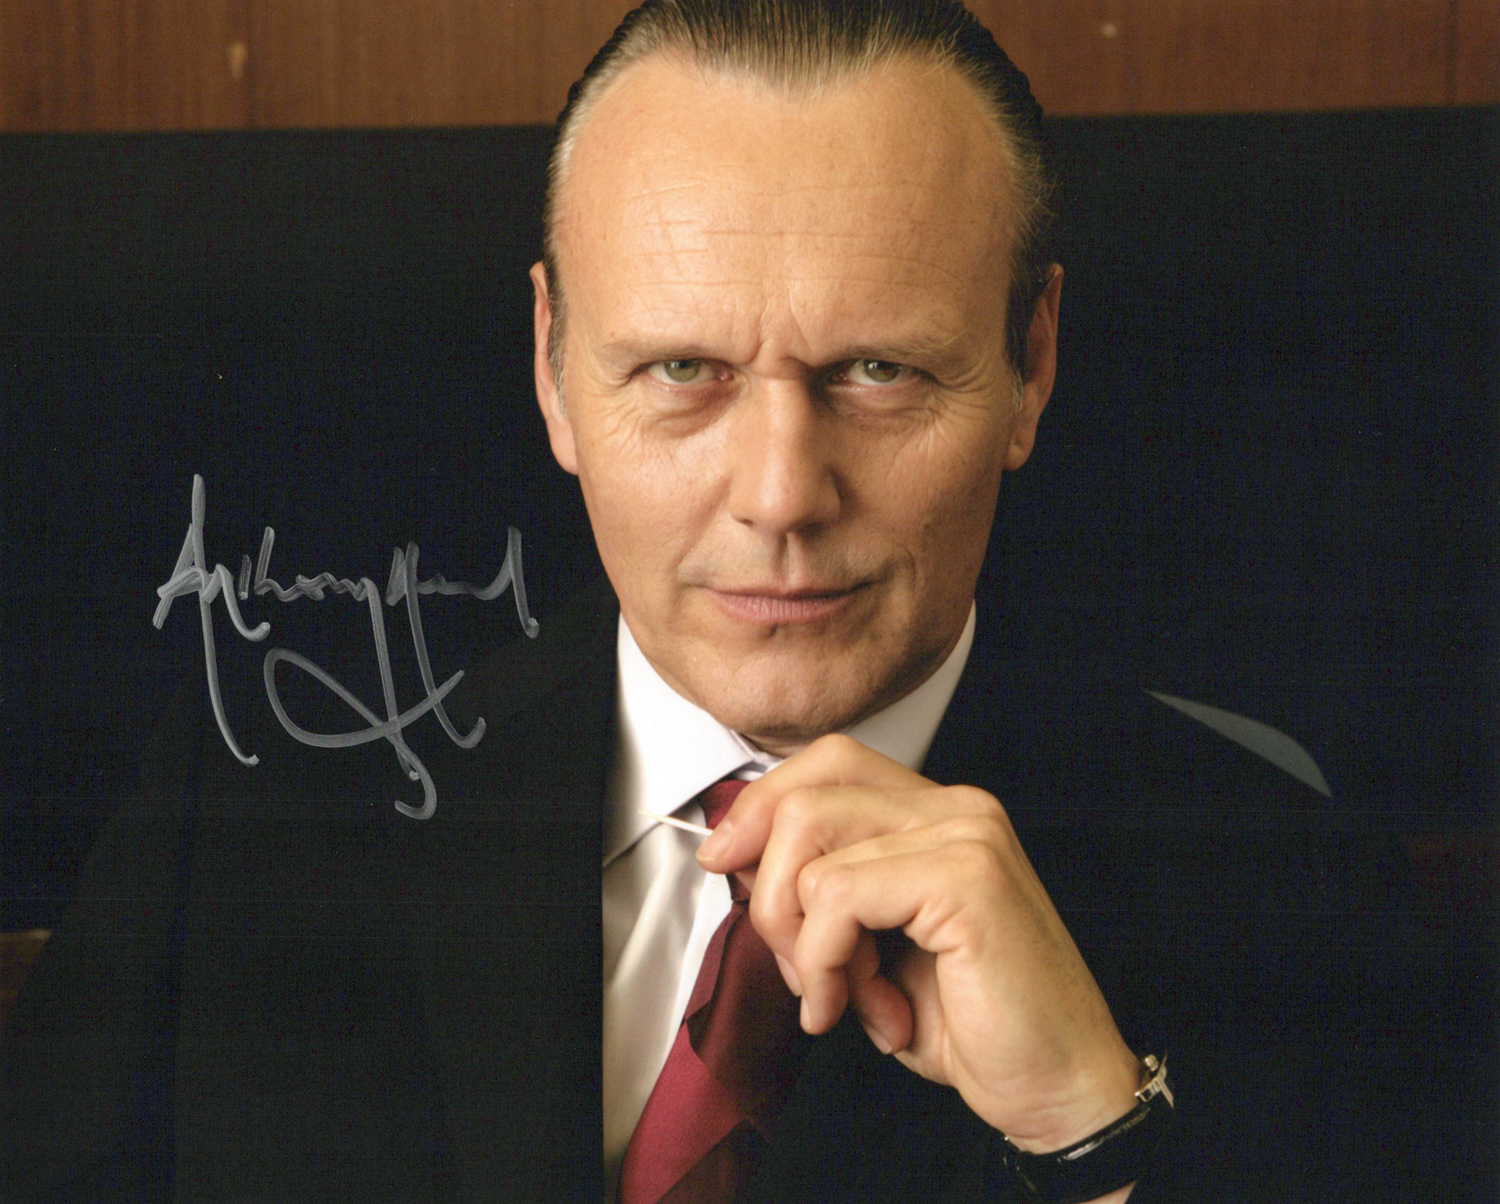 Anthony Head Original Autogramm auf Foto 20x25cm - Doctor Who